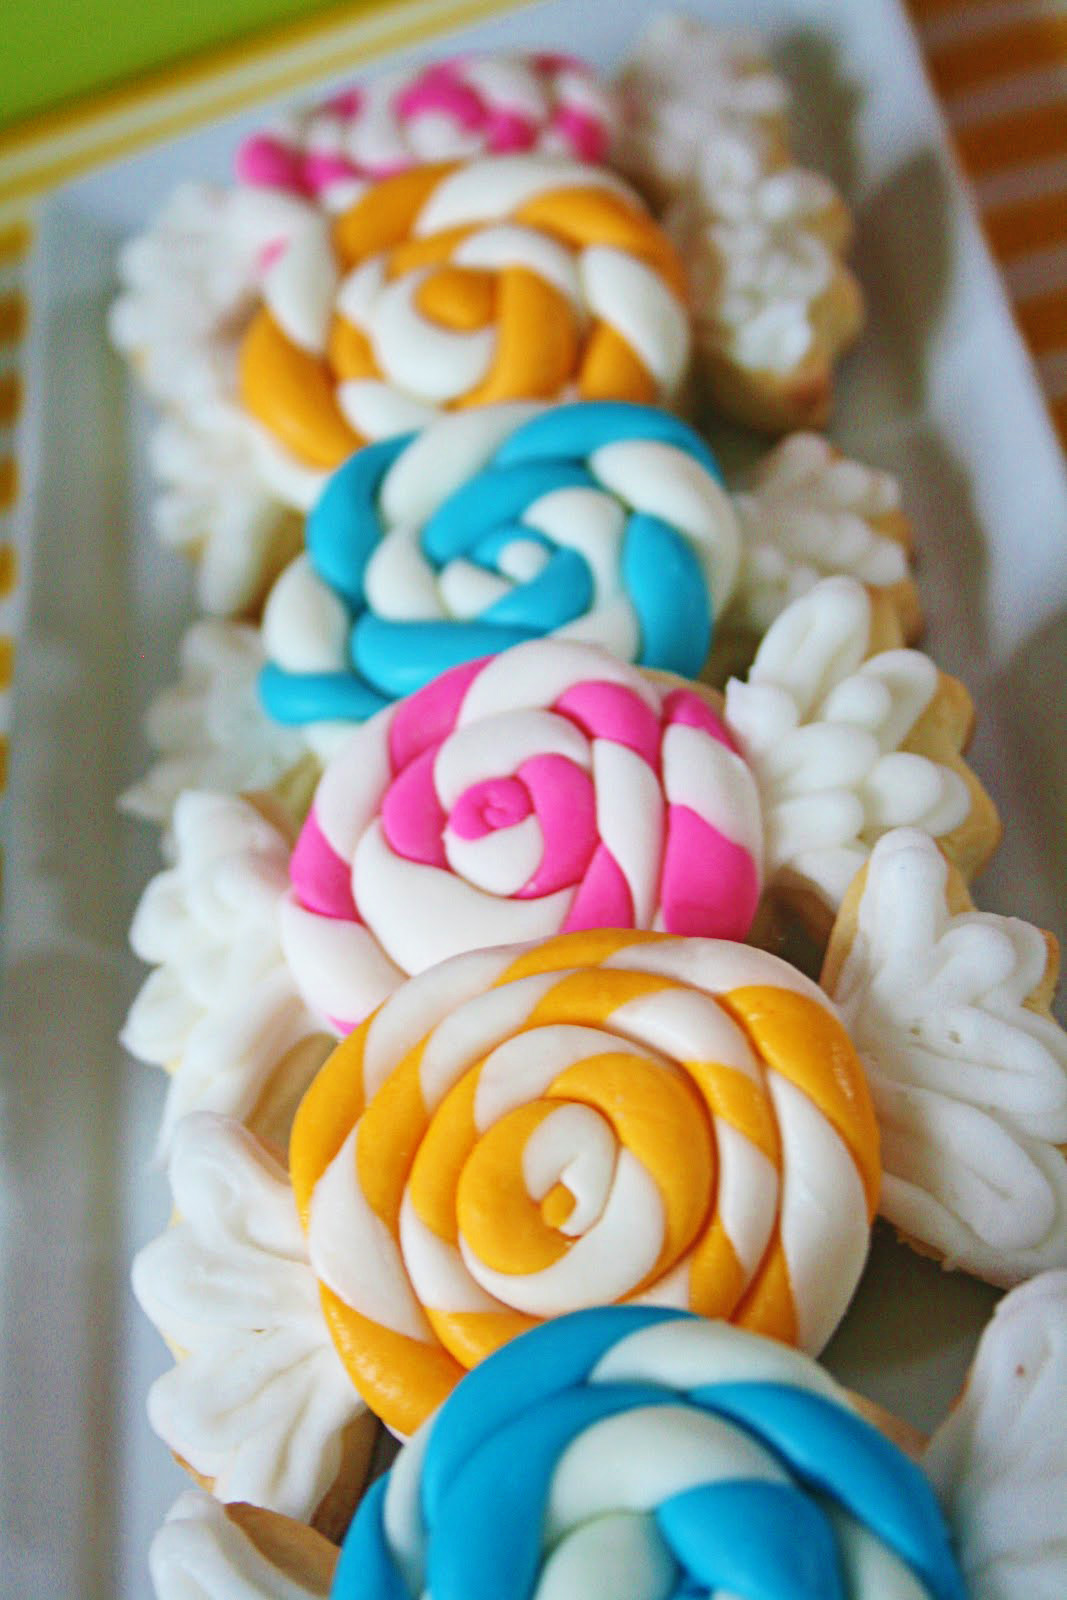 Candy S Colorado Cranker Blog Csm Tools For Cranking: Amanda's Parties To Go: Sweet Shoppe Party -- Candyland